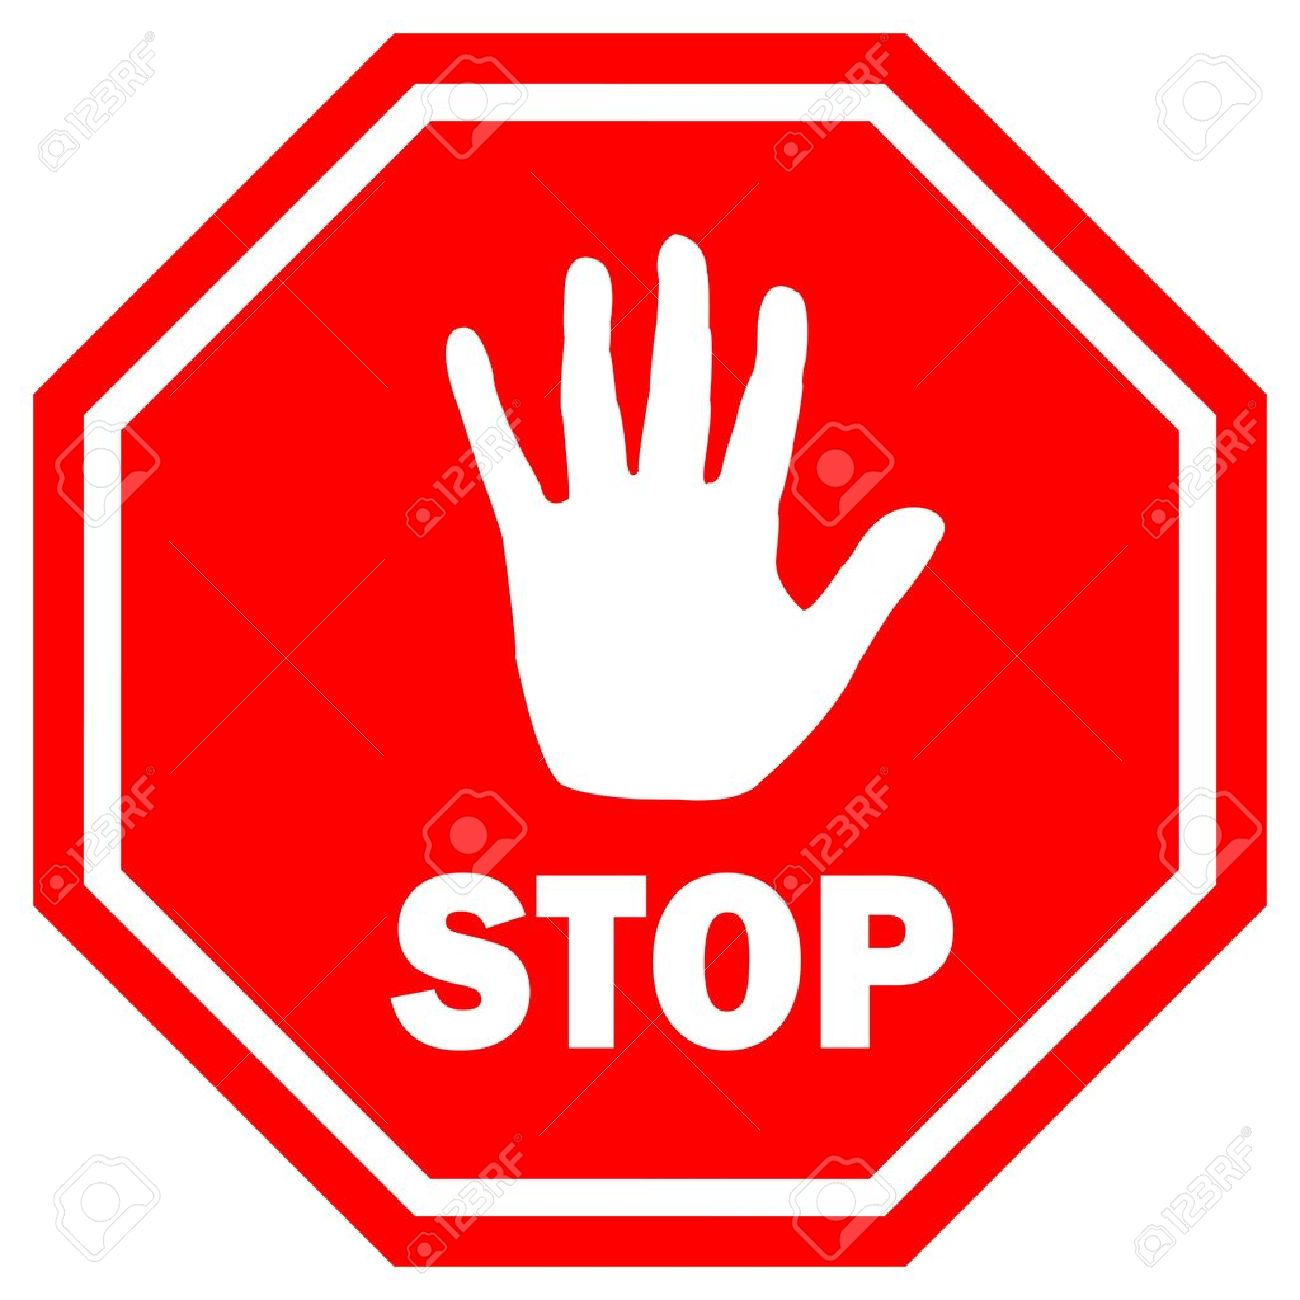 Image result for stop!